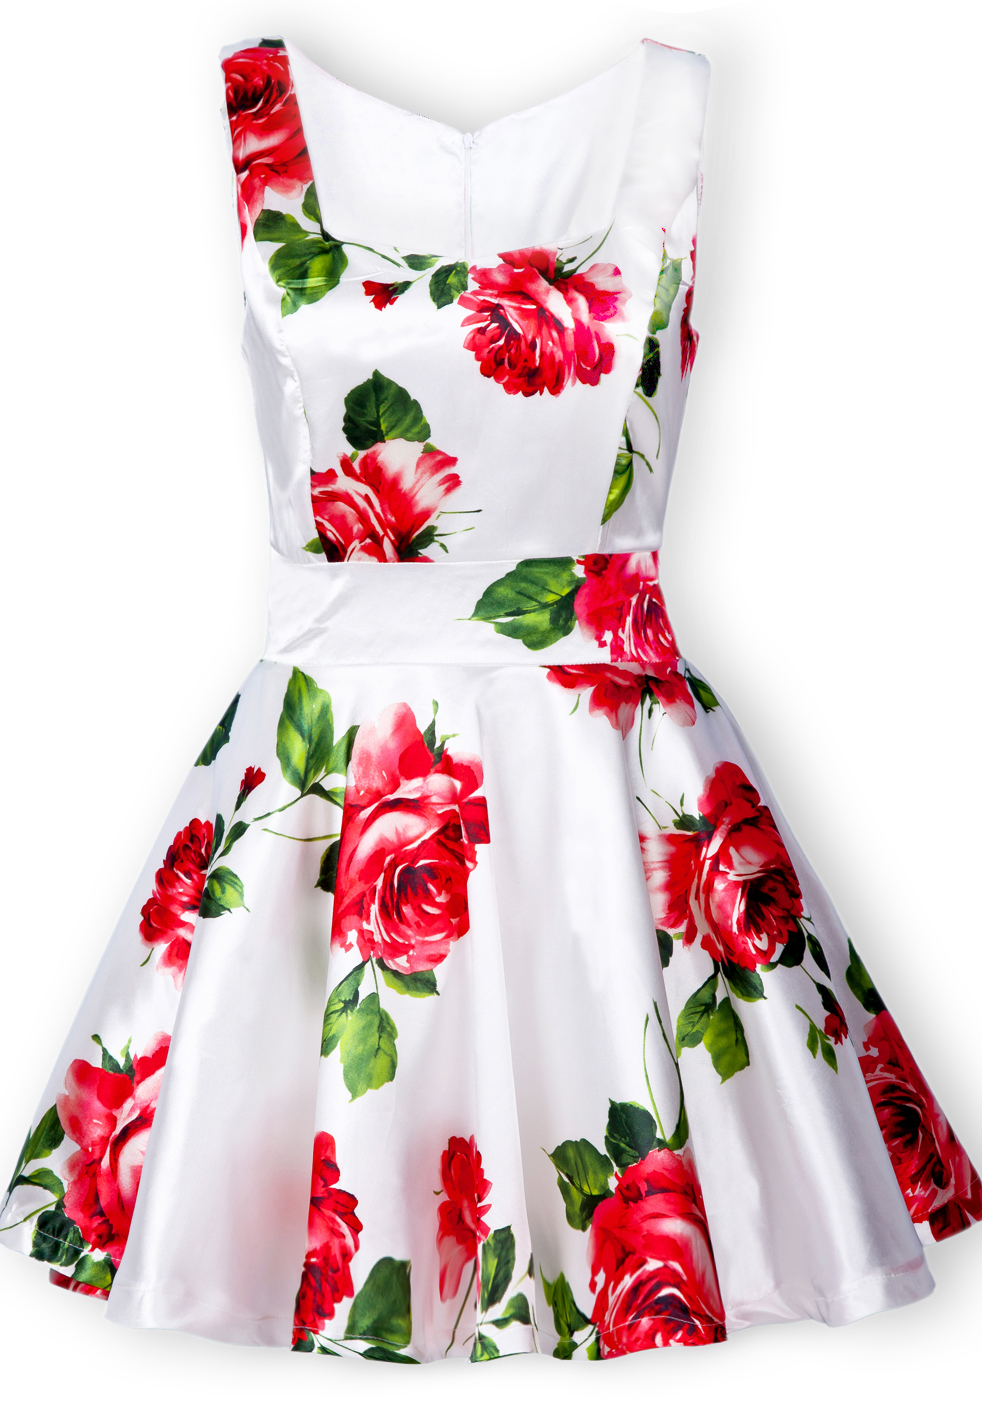 White Sleeveless Bandeau Floral Tank Dress - Sheinside.com Mobile Site